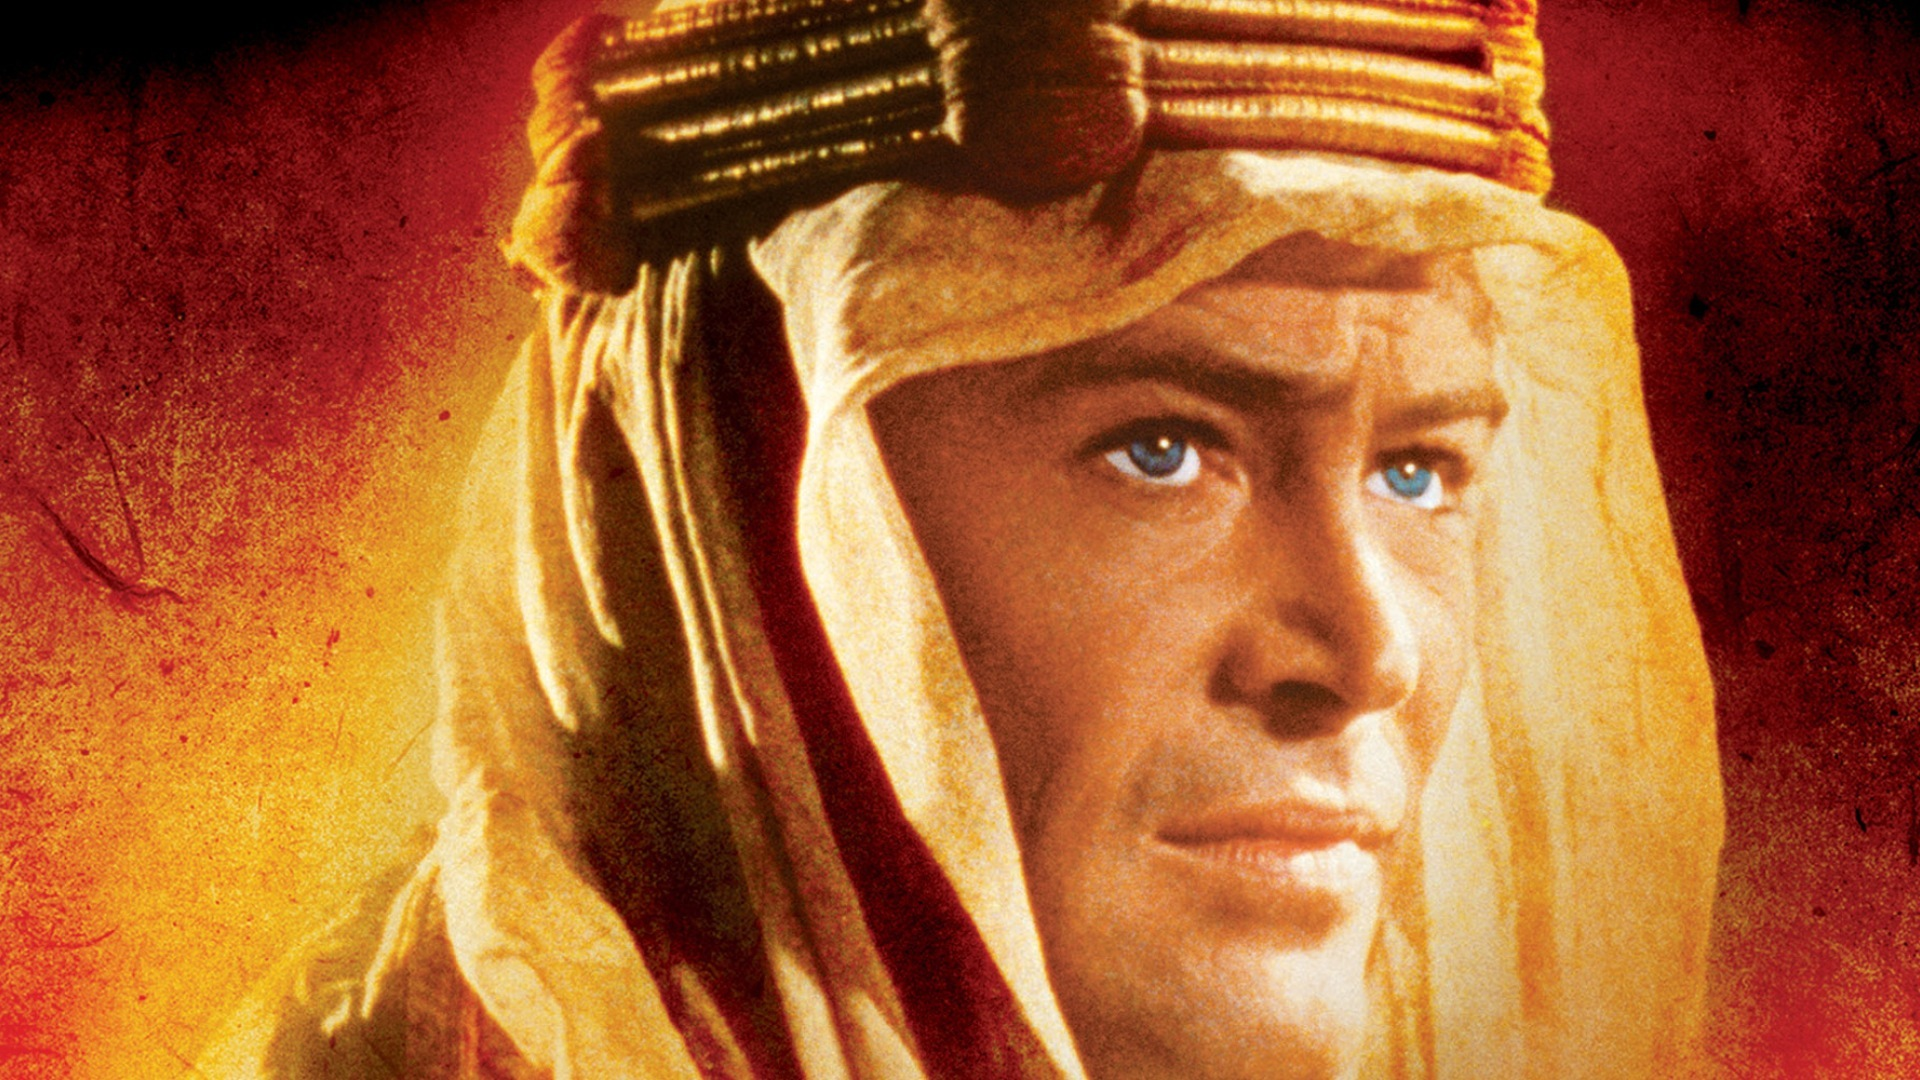 Lawrence Of Arabia HD Wallpaper Background Image 1920x1080 1920x1080